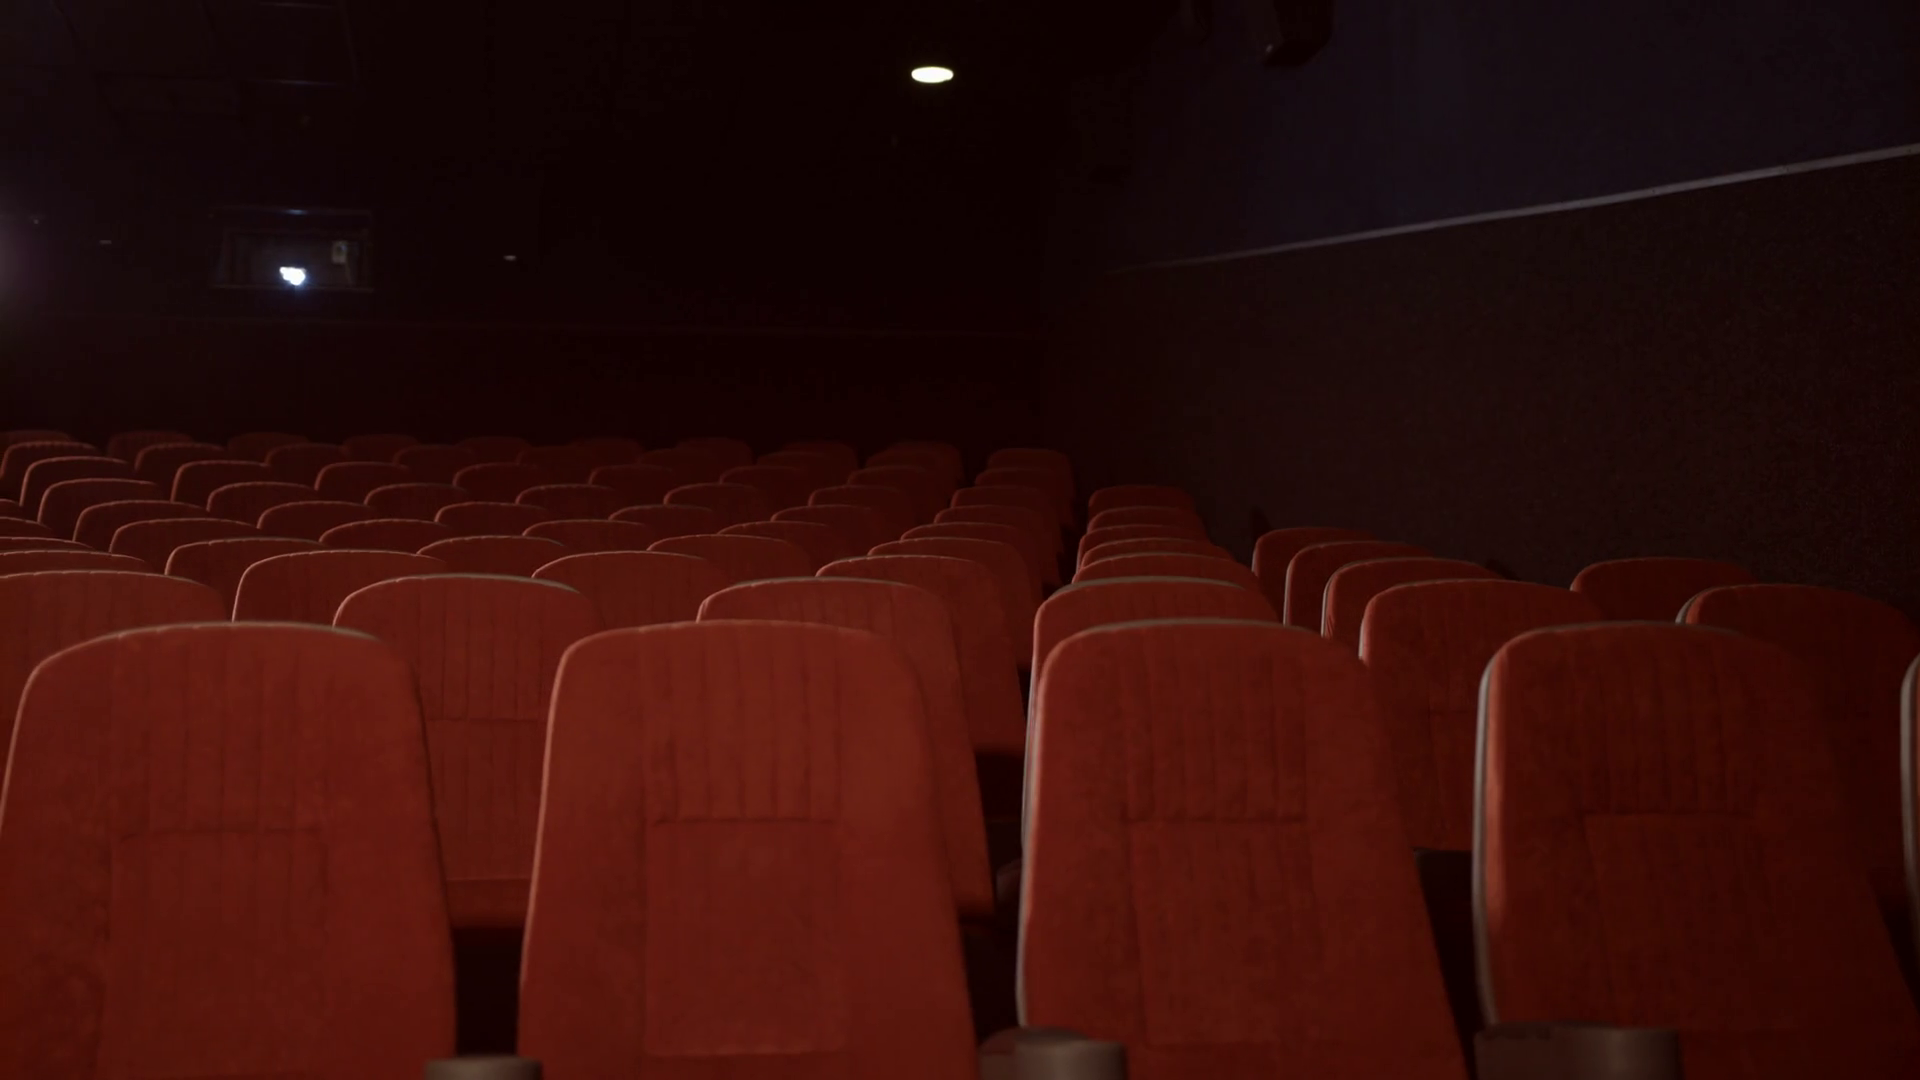 Empty Seats In Cinema Theatre Red Seats In Movie Theatre Empty Theatre Hall With Red Armchairs Cinema Hall With Chairs Is Ready For Visitors Stock Video Footage Storyblocks